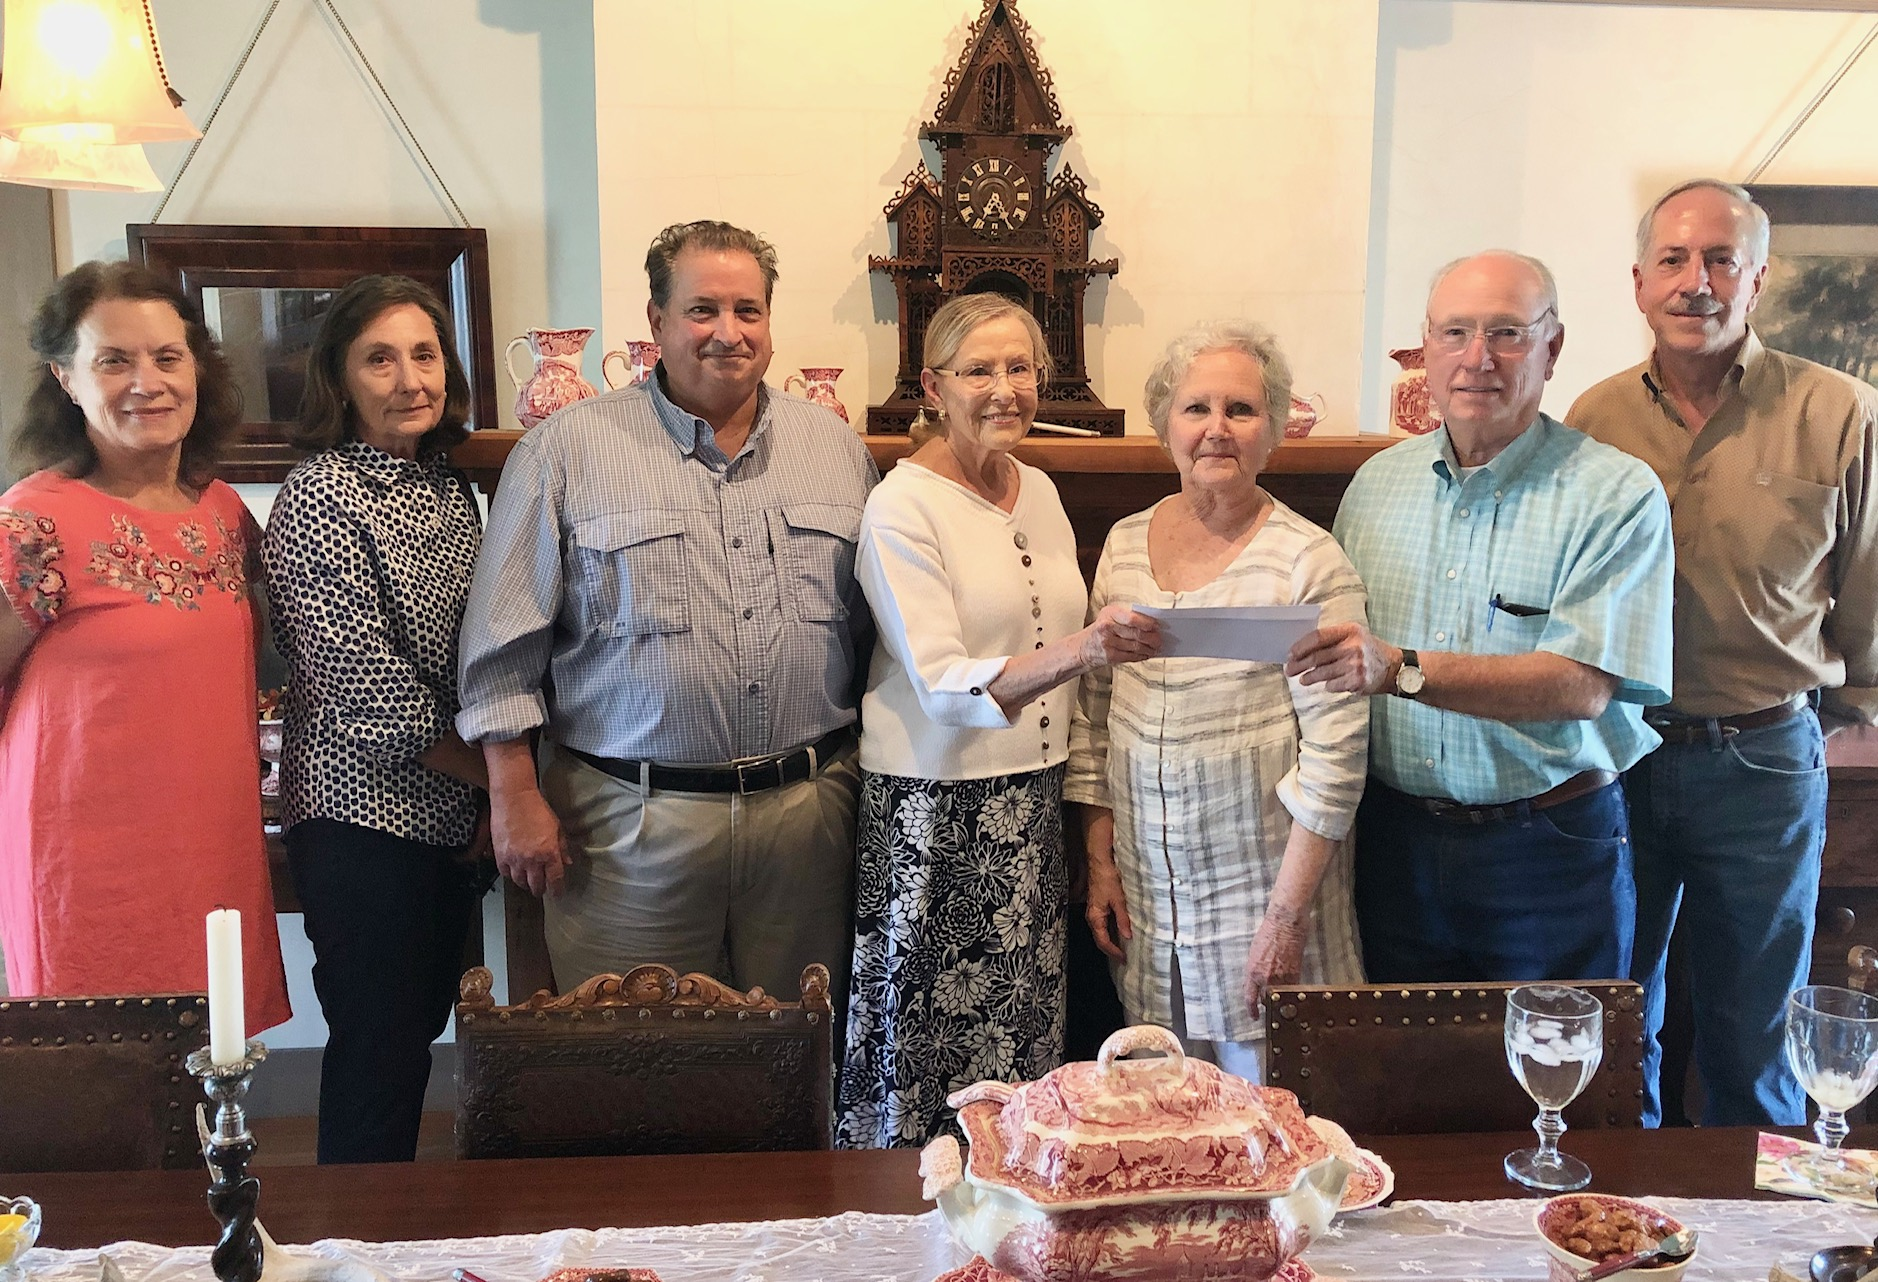 Mrs. Betty Marshall Stinson donated funds to the Evant ISD Heritage Foundation Board Members in the hope of motivating other alumni to contribute to the improvement of the educational experiences at Evant ISD.